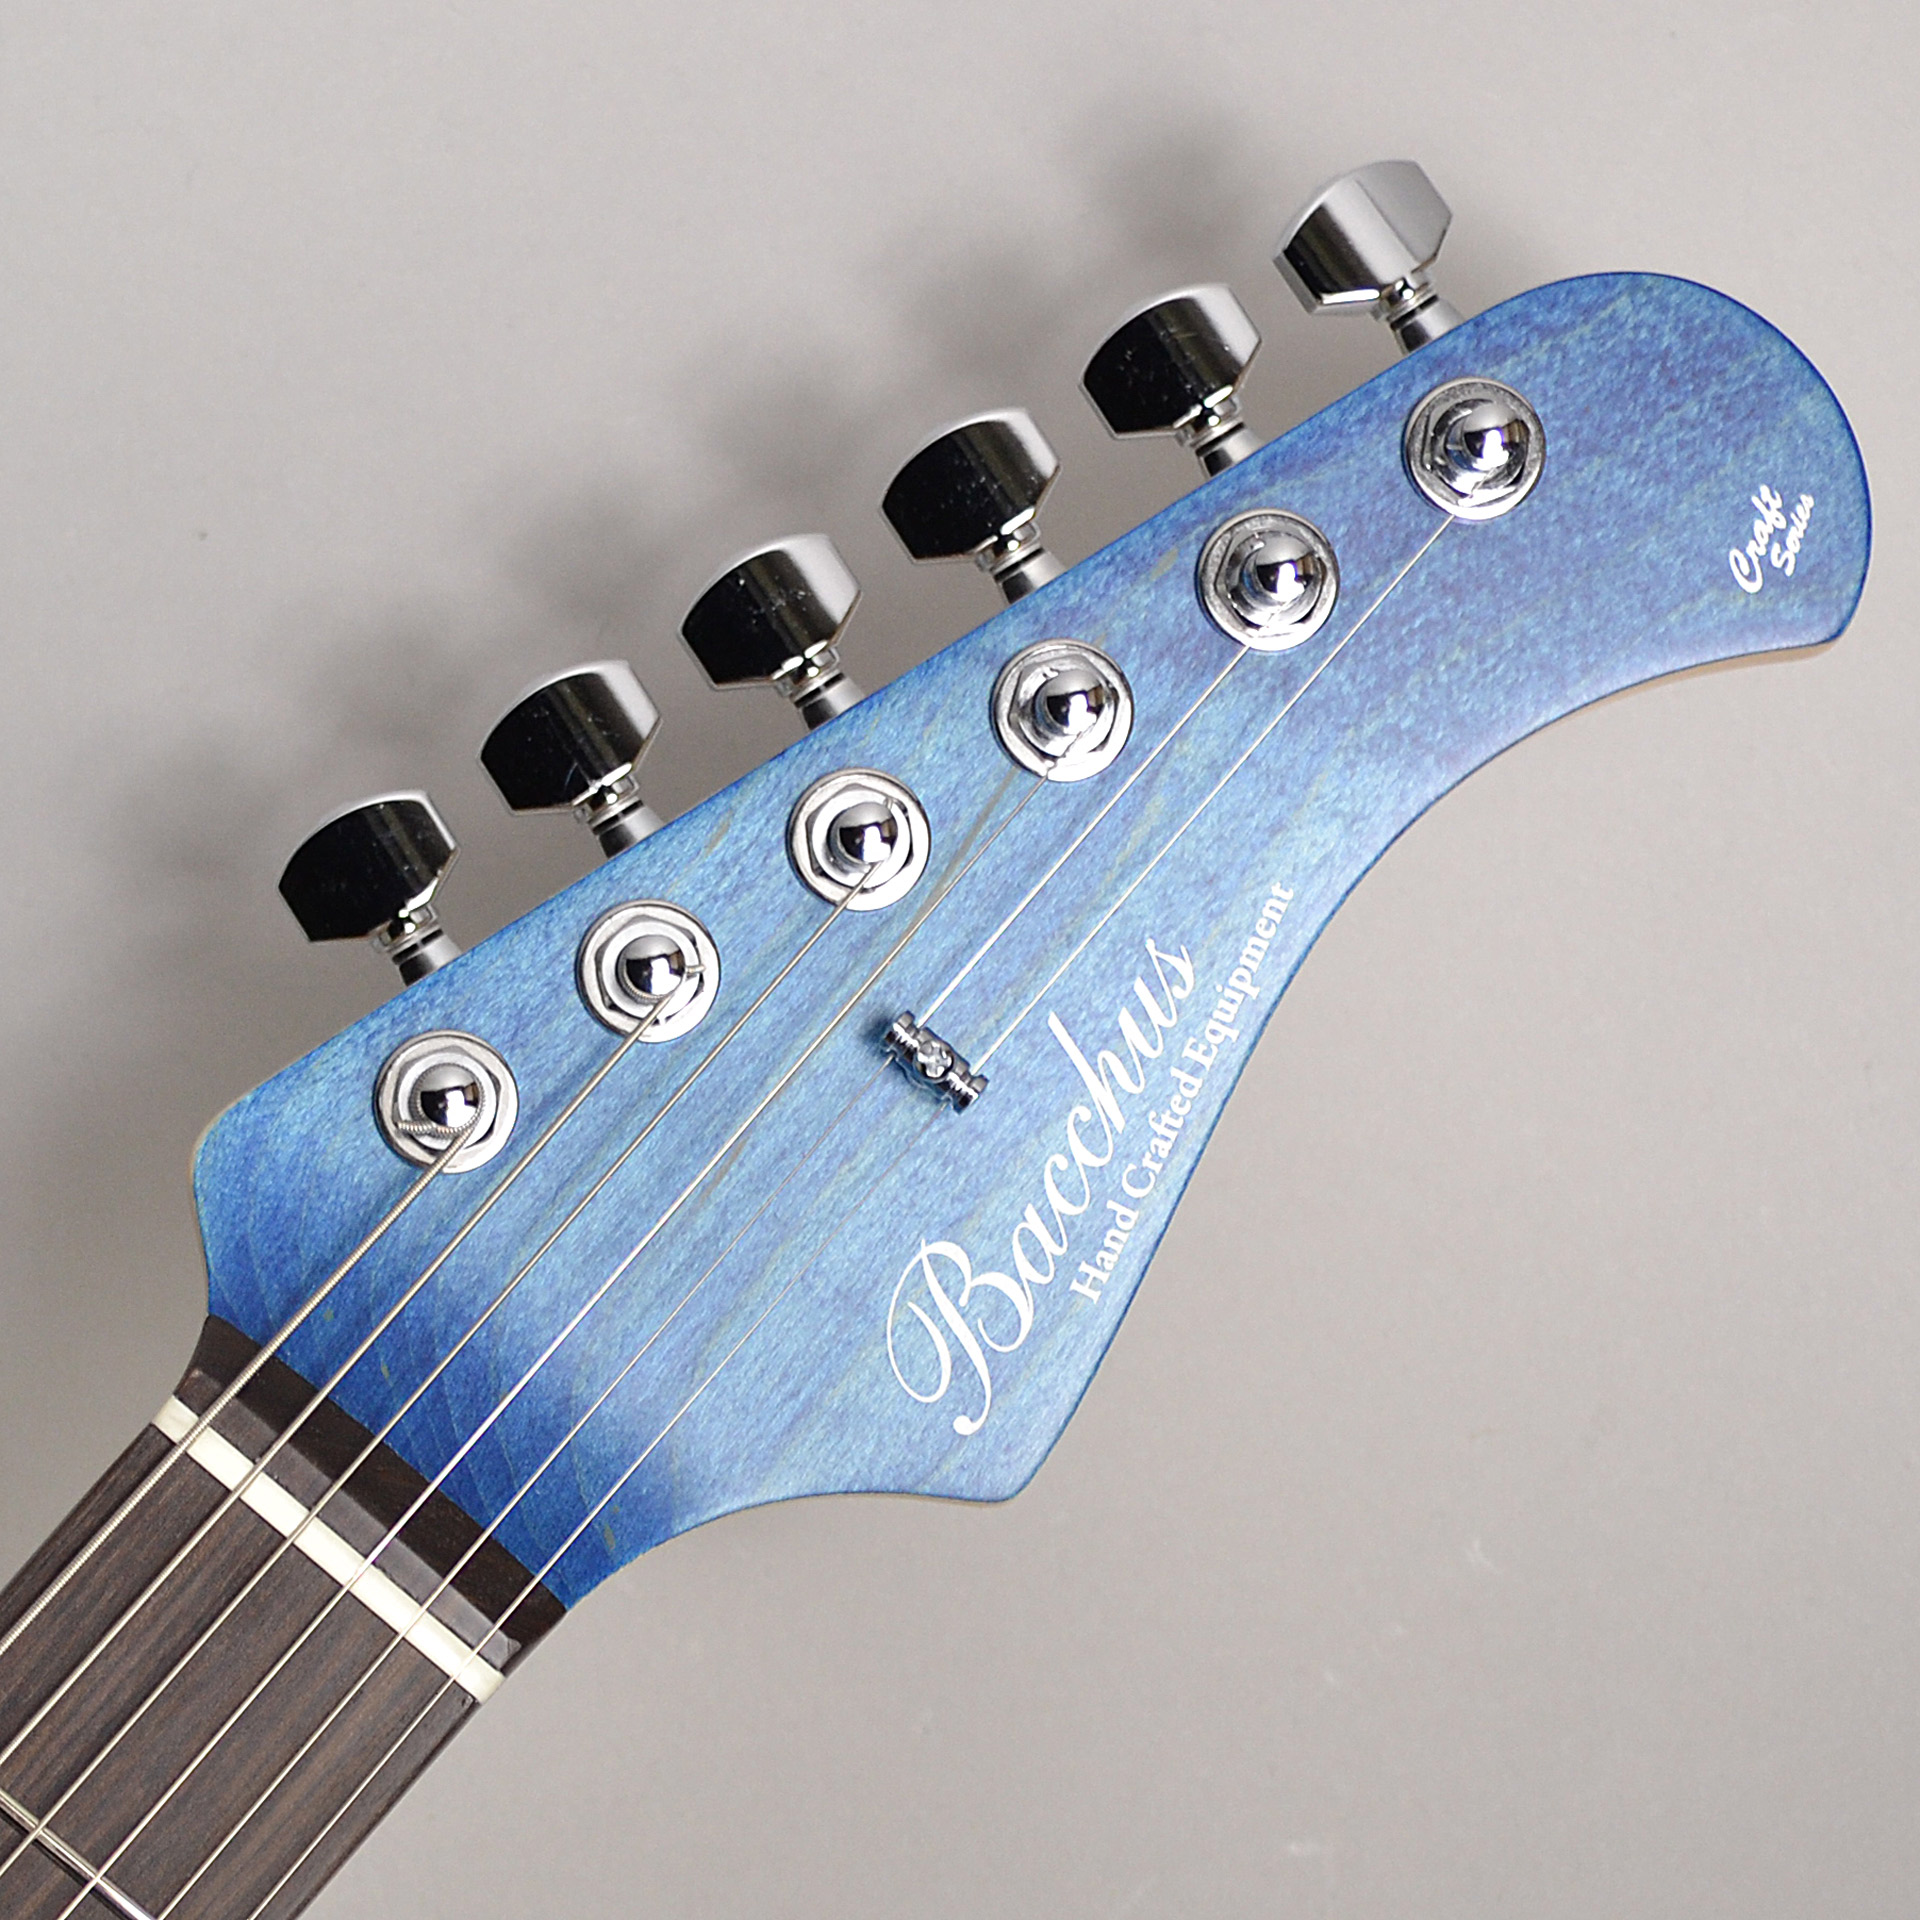 G-STUDIO-FM CUSTOM BlueOilのヘッド画像